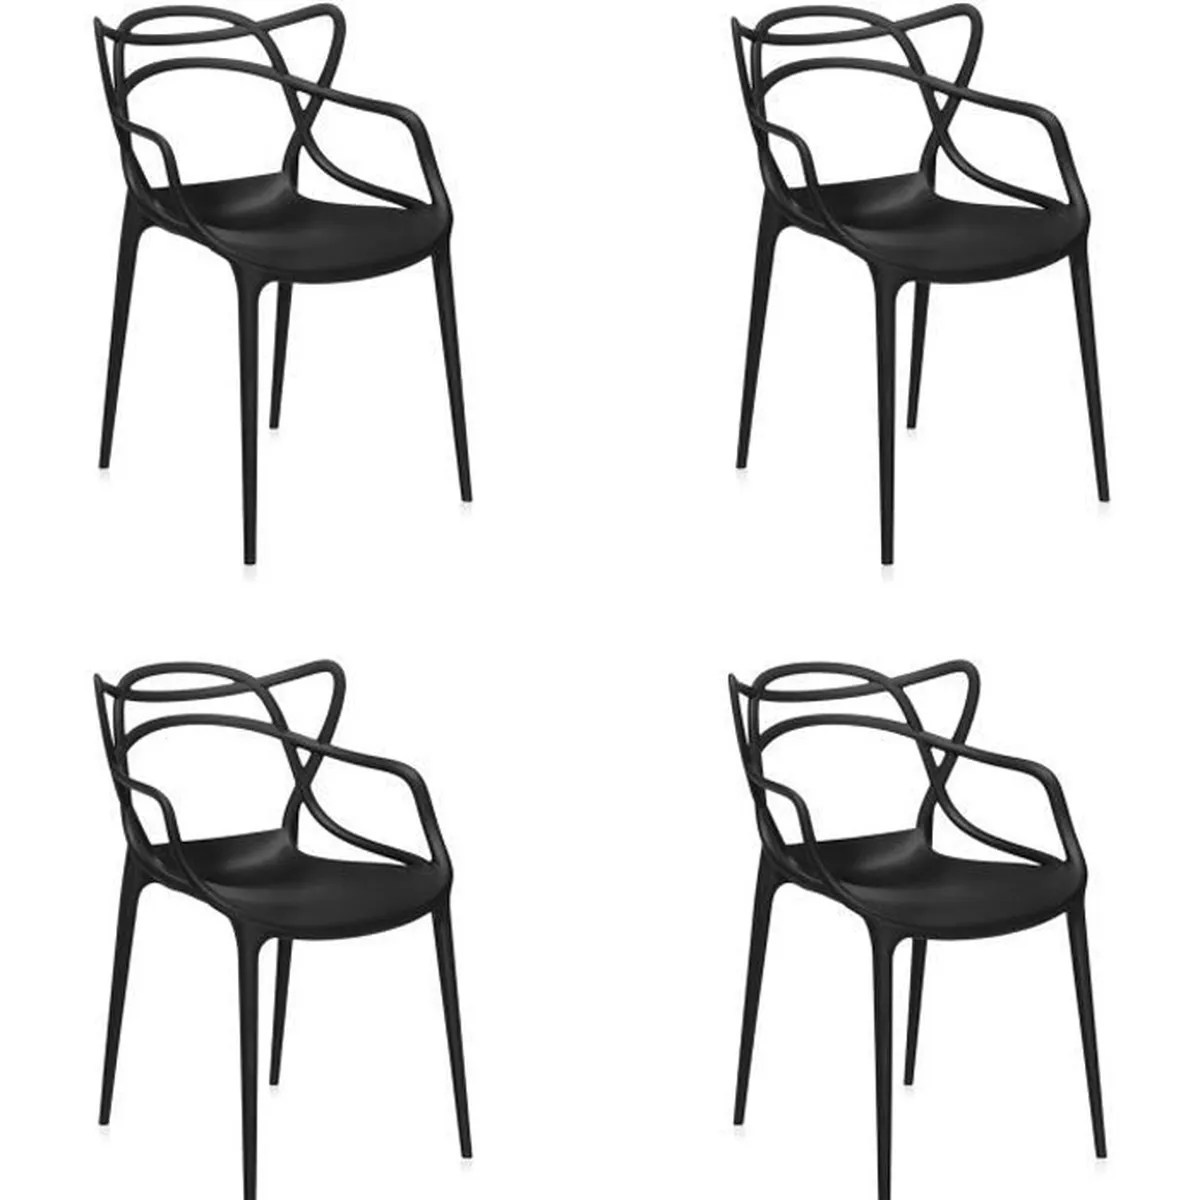 Chaise Kartell Achat Vente Pas Cher